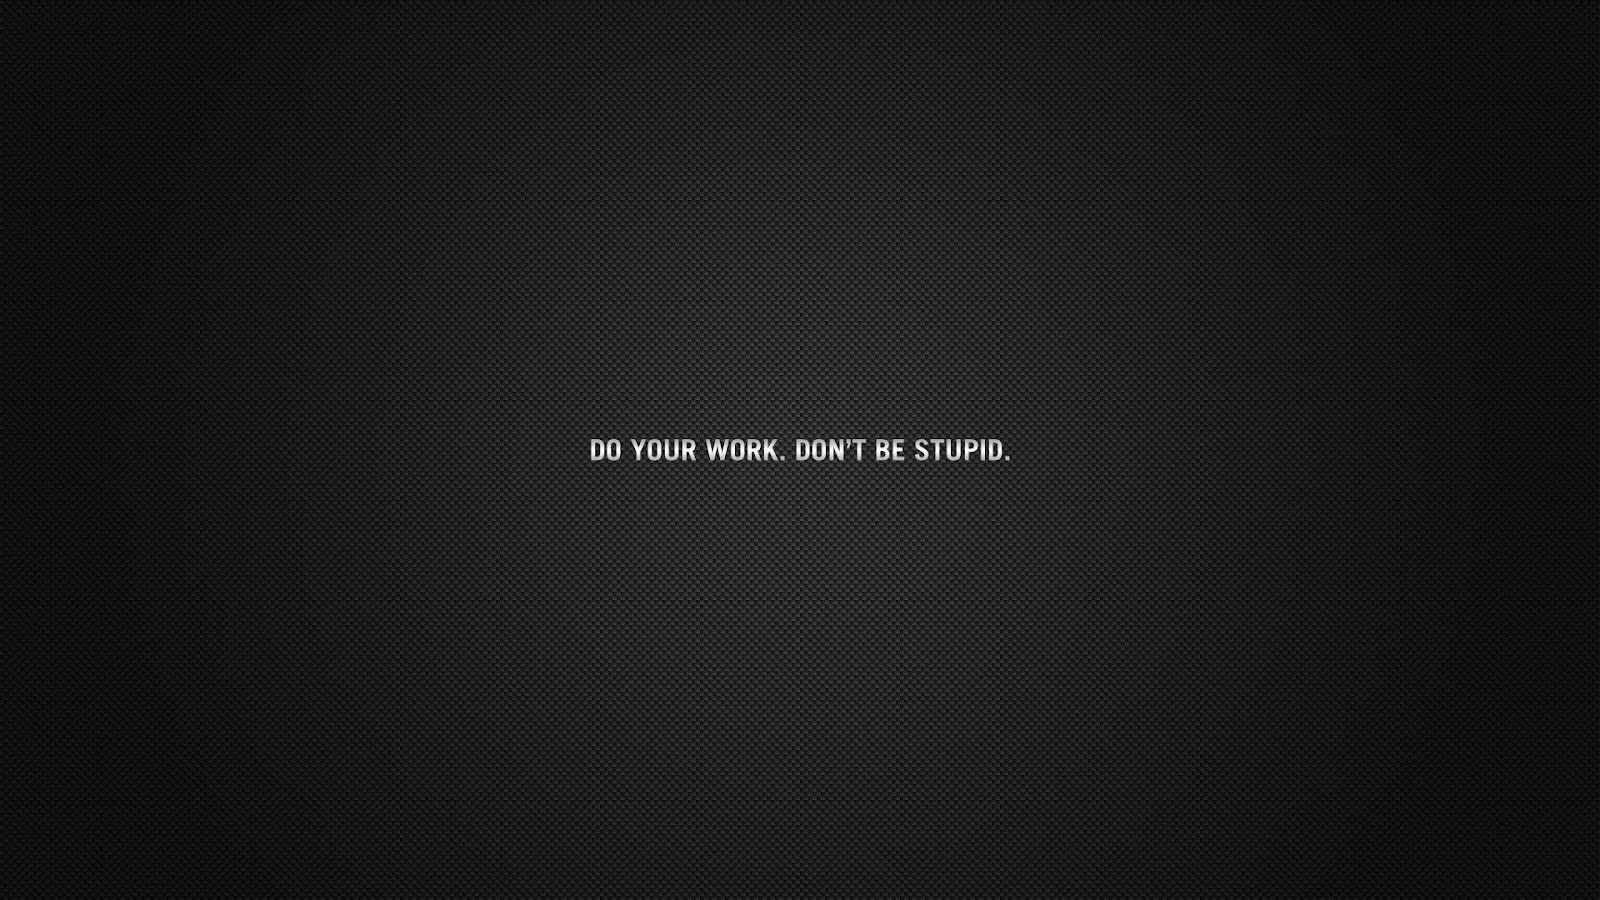 Most Populars Quotes - Do you Work Dont Be Stupid